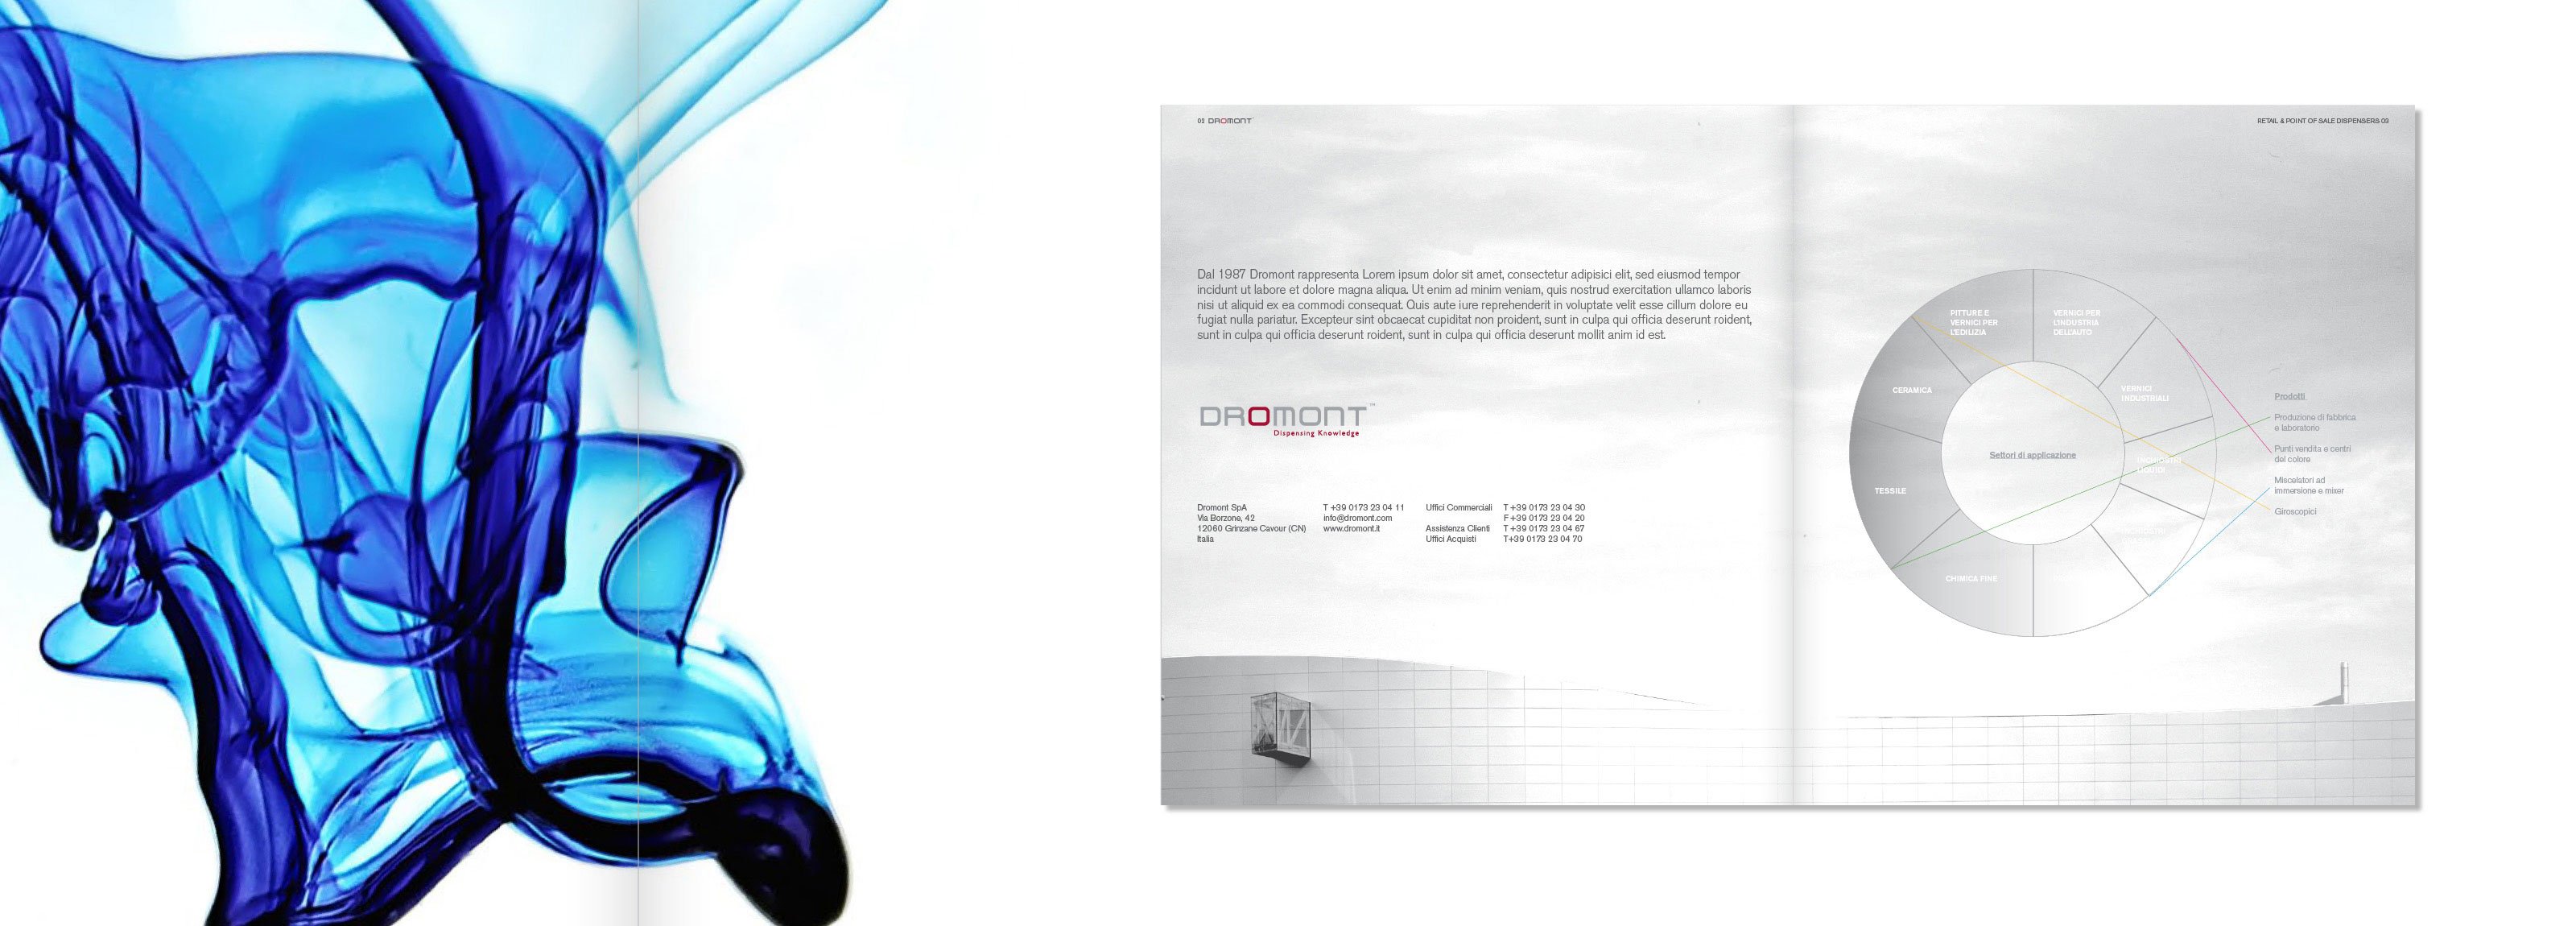 Graphic concept signed by Hangar Design Group for leading company in the industry of dispensing technologies